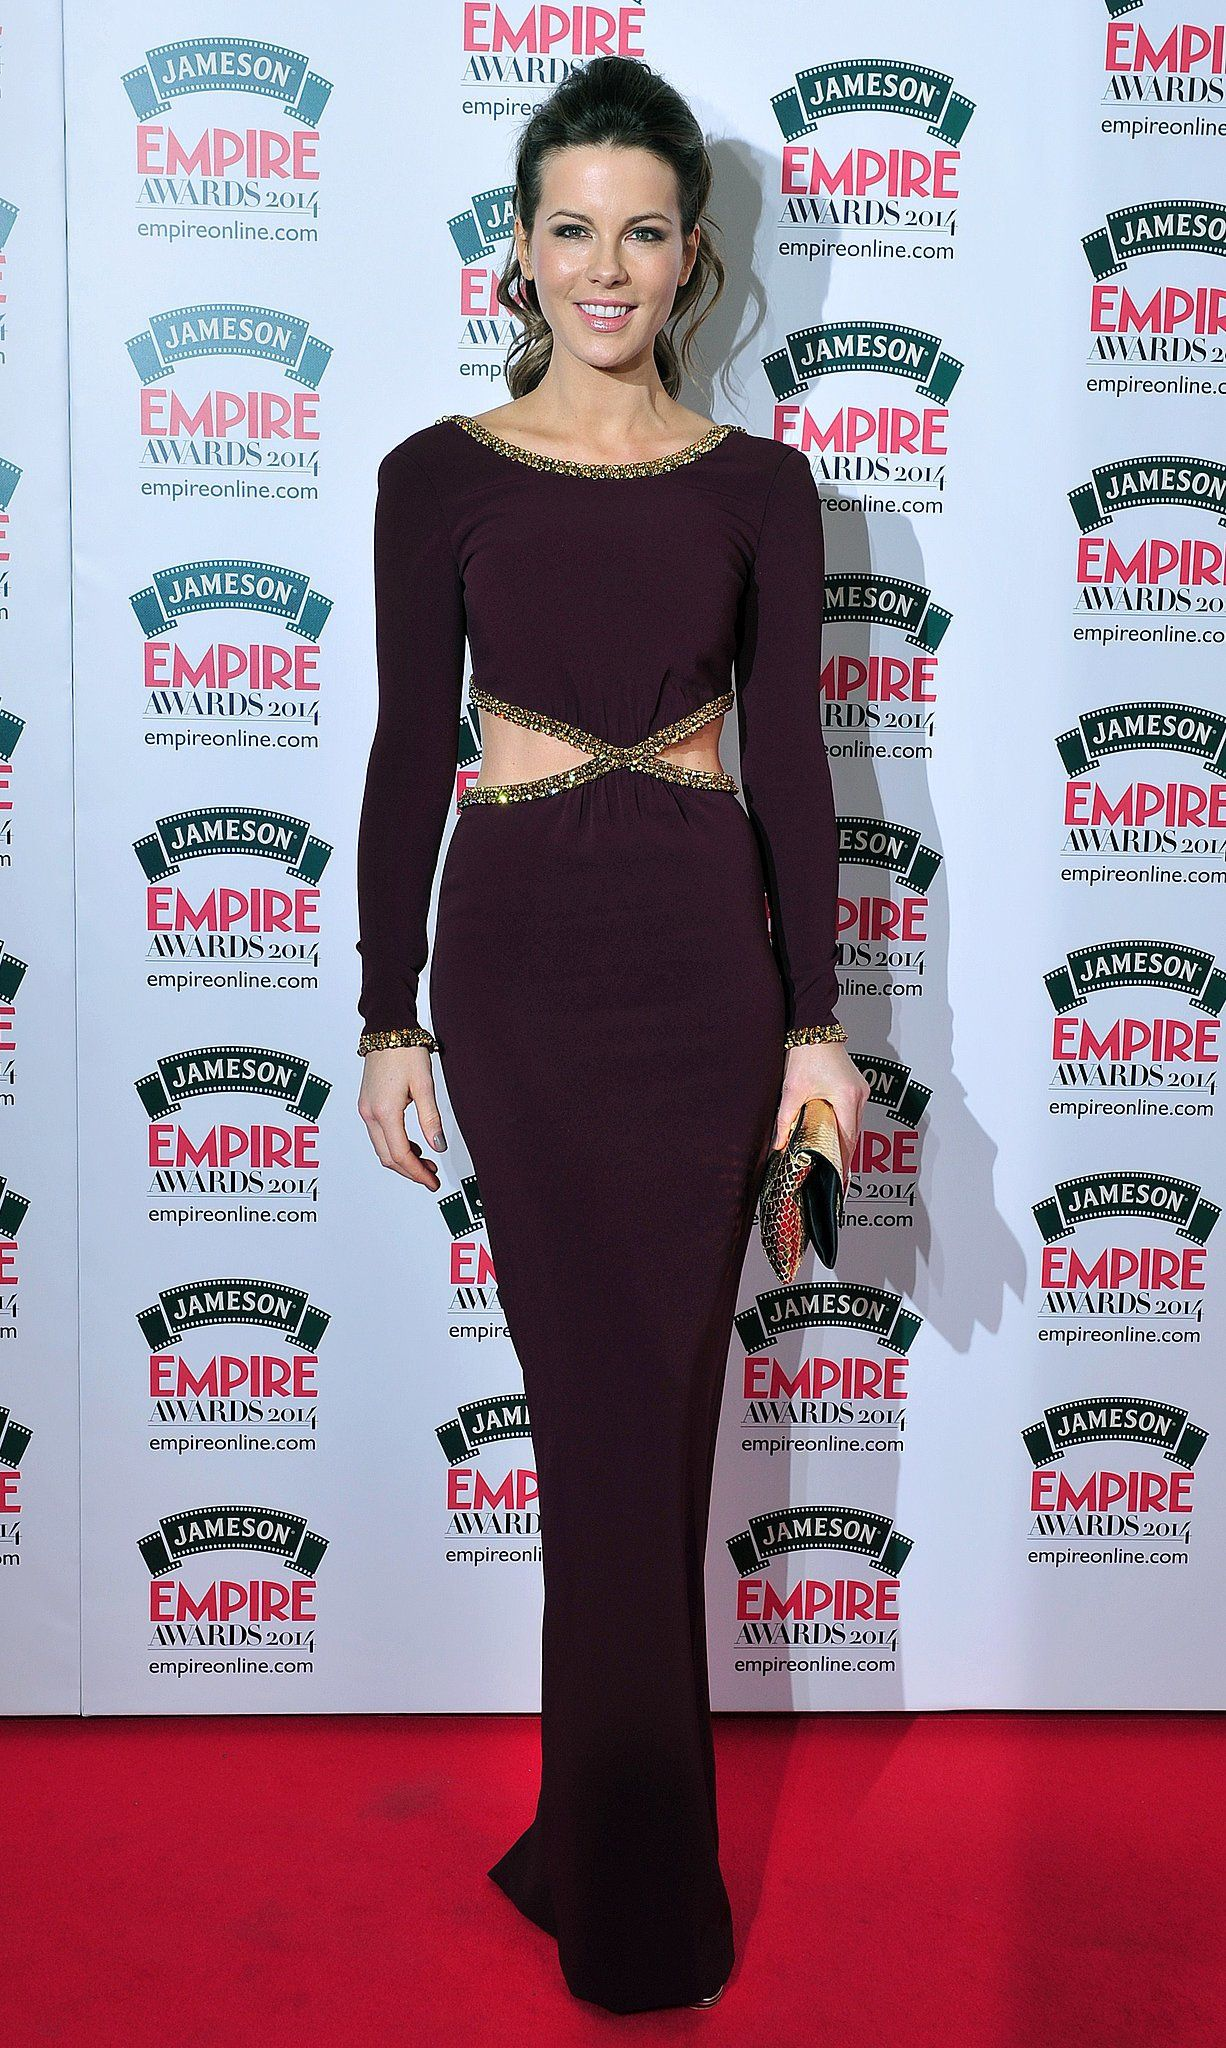 Kate Beckinsale flashed a sliver of skin at the 2014 Jameson Empire Awards in London.